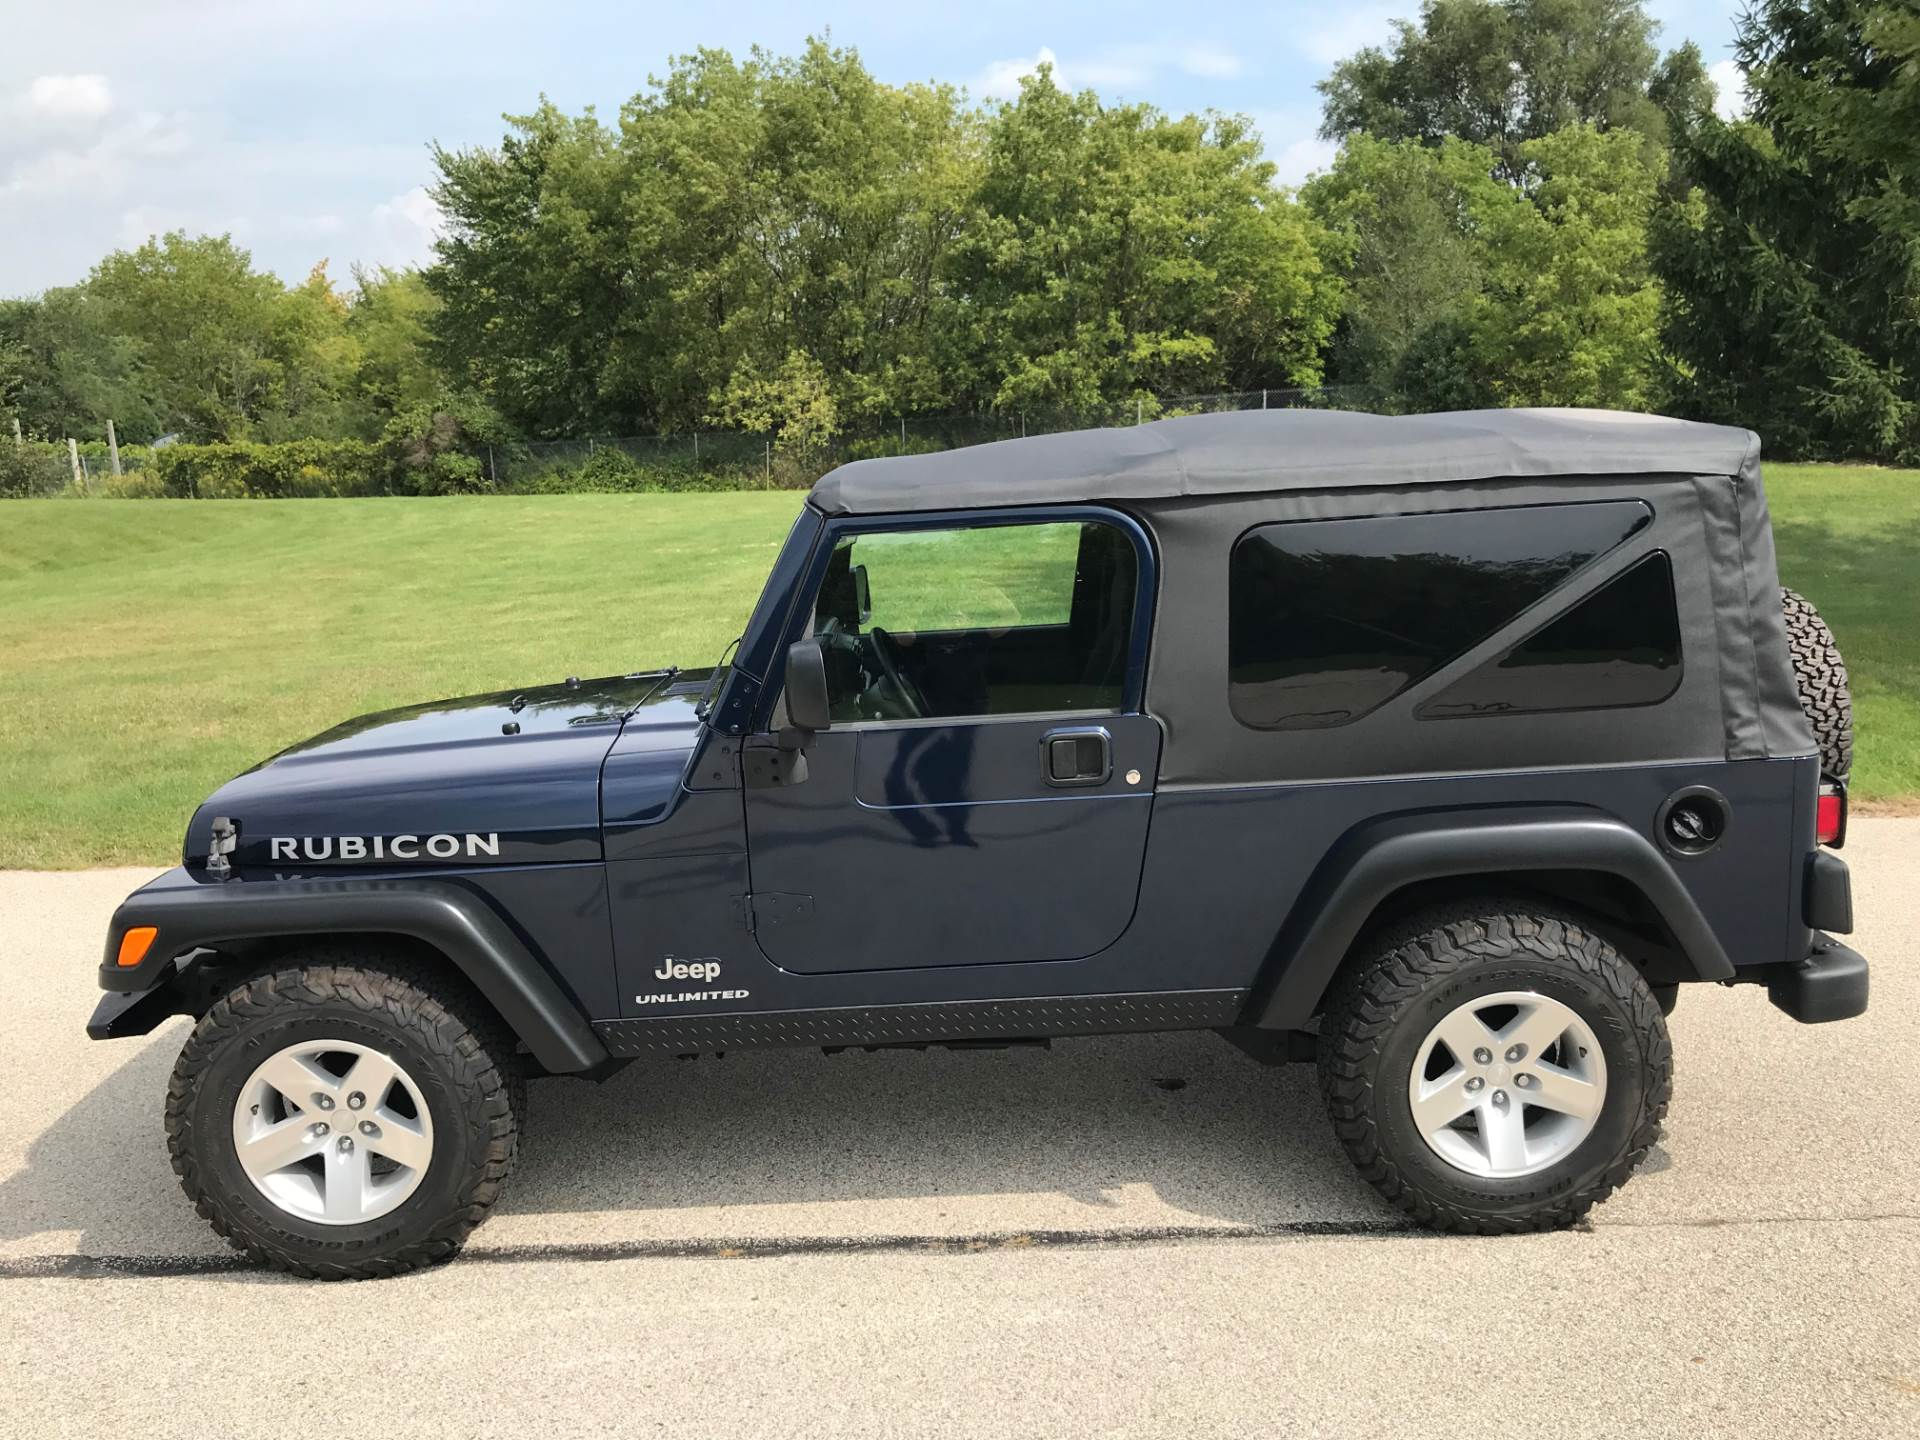 2006 Jeep Wrangler Unlimited Rubicon 2dr SUV 4WD in Big Bend, Wisconsin - Photo 90